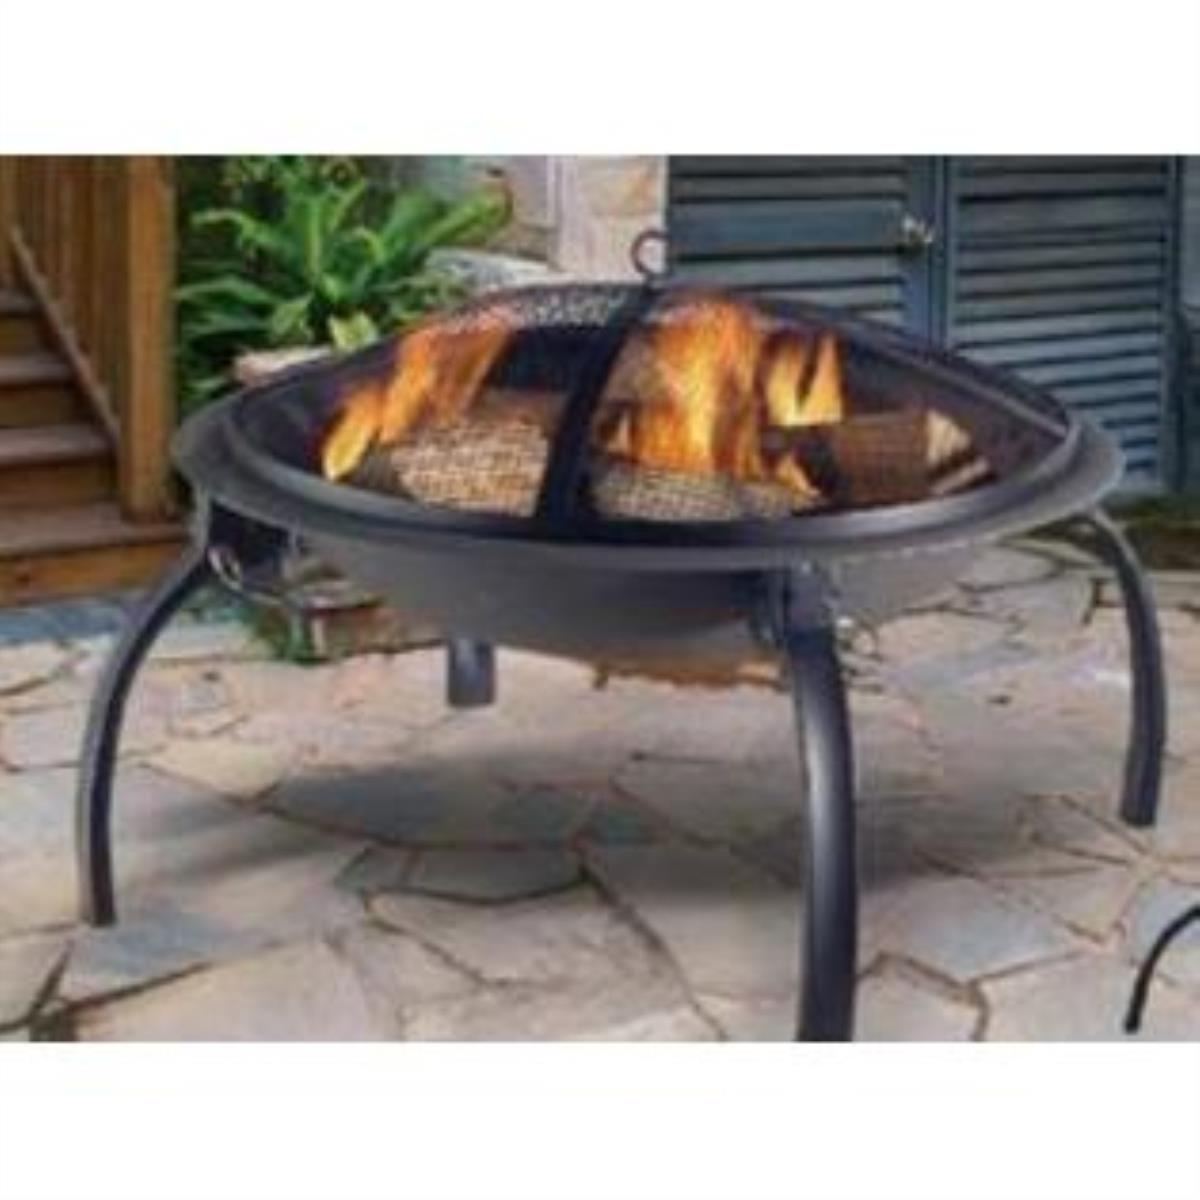 Fire Sense Pit 2598 For Sizing 1200 X